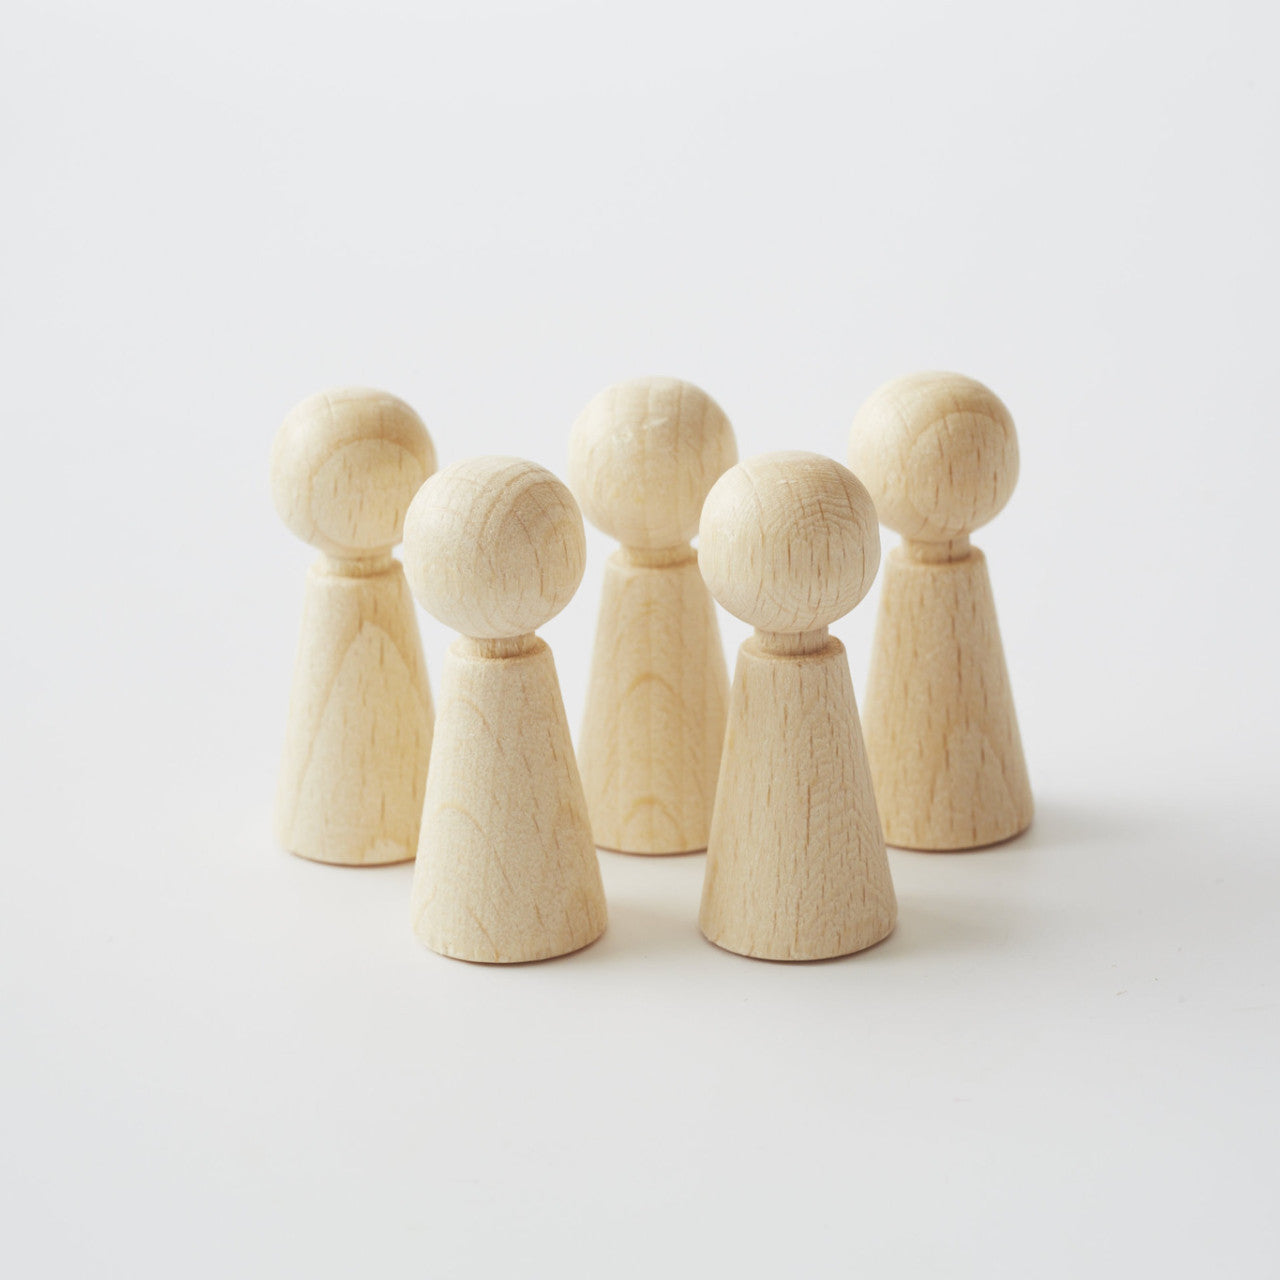 Unpainted Wooden Peg Dolls